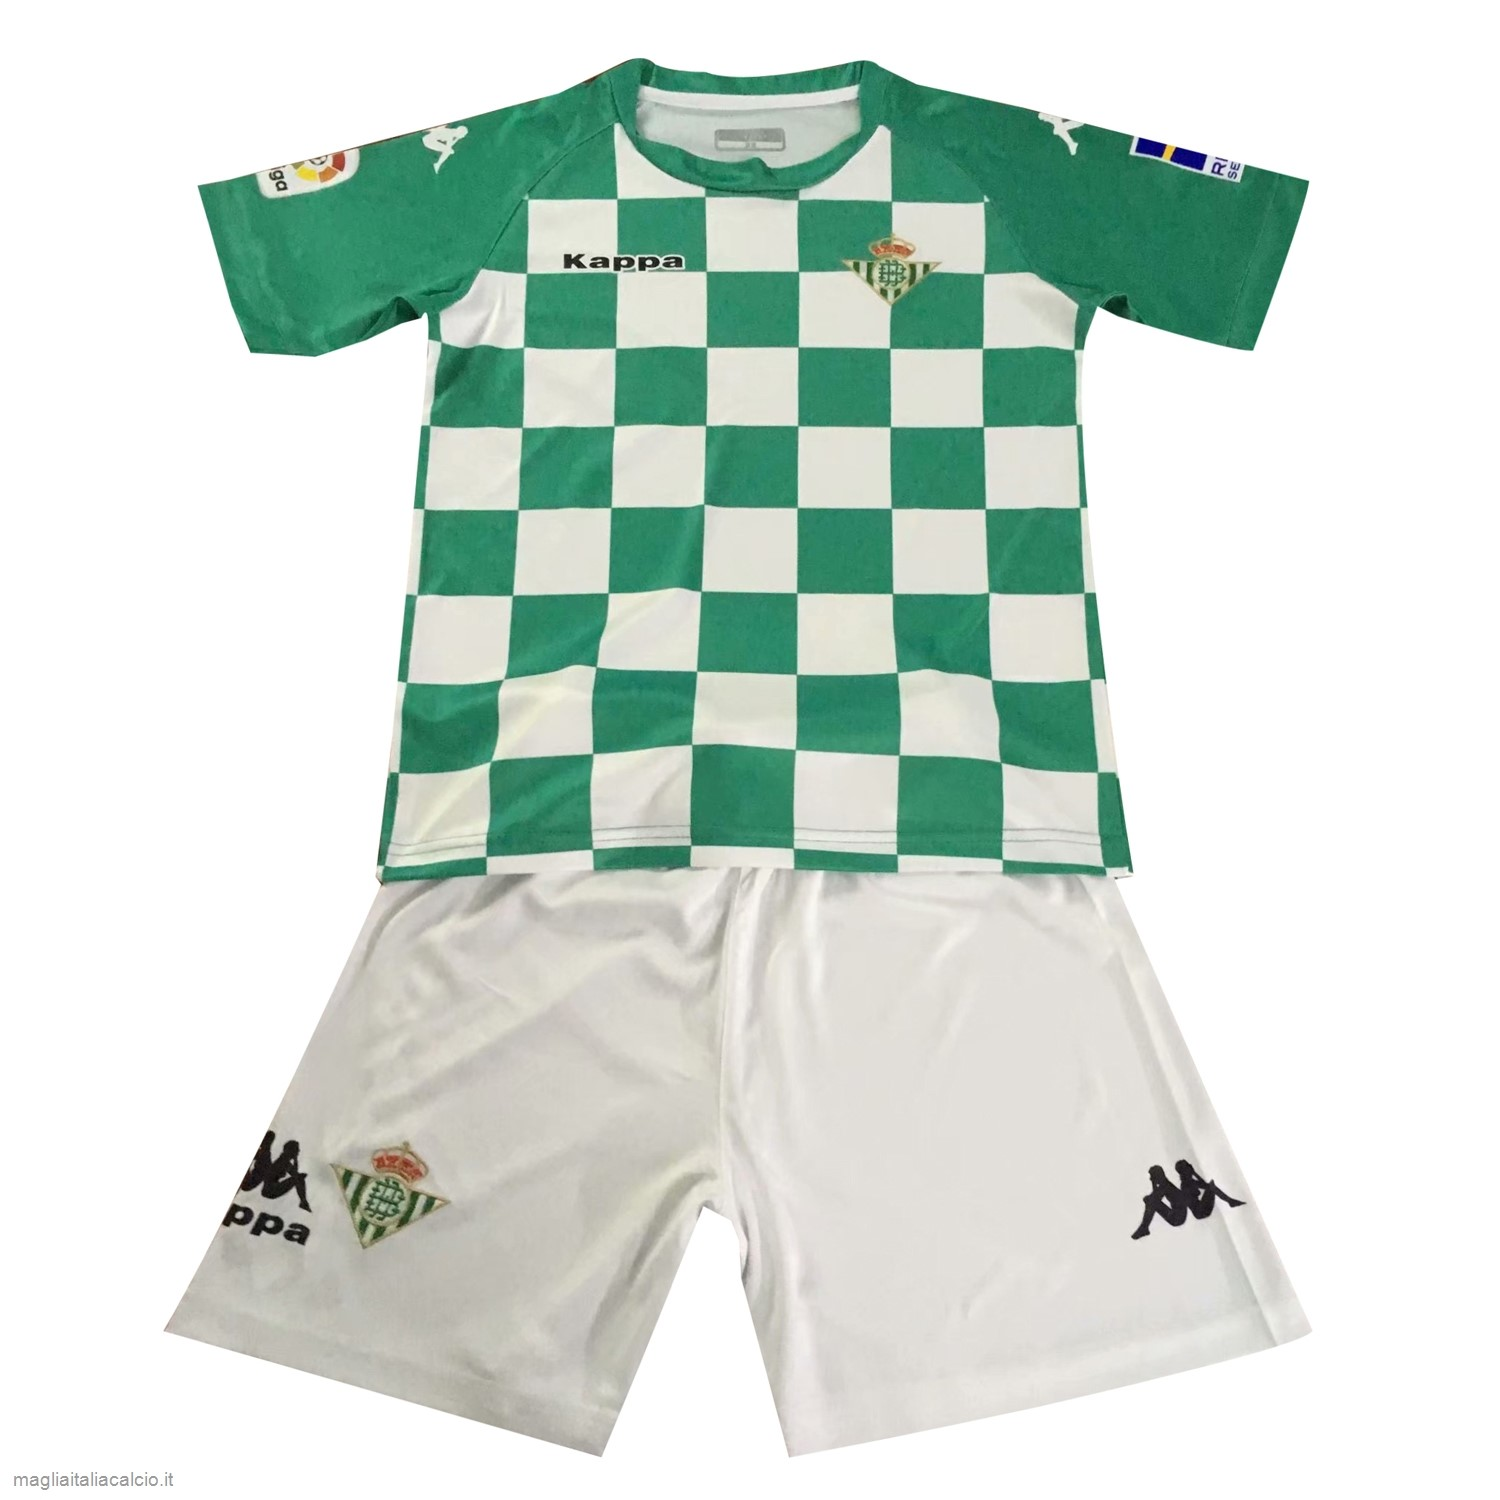 Originale Édition commémoroative Conjunto De Bambino Real Betis 2019 2020 Verde